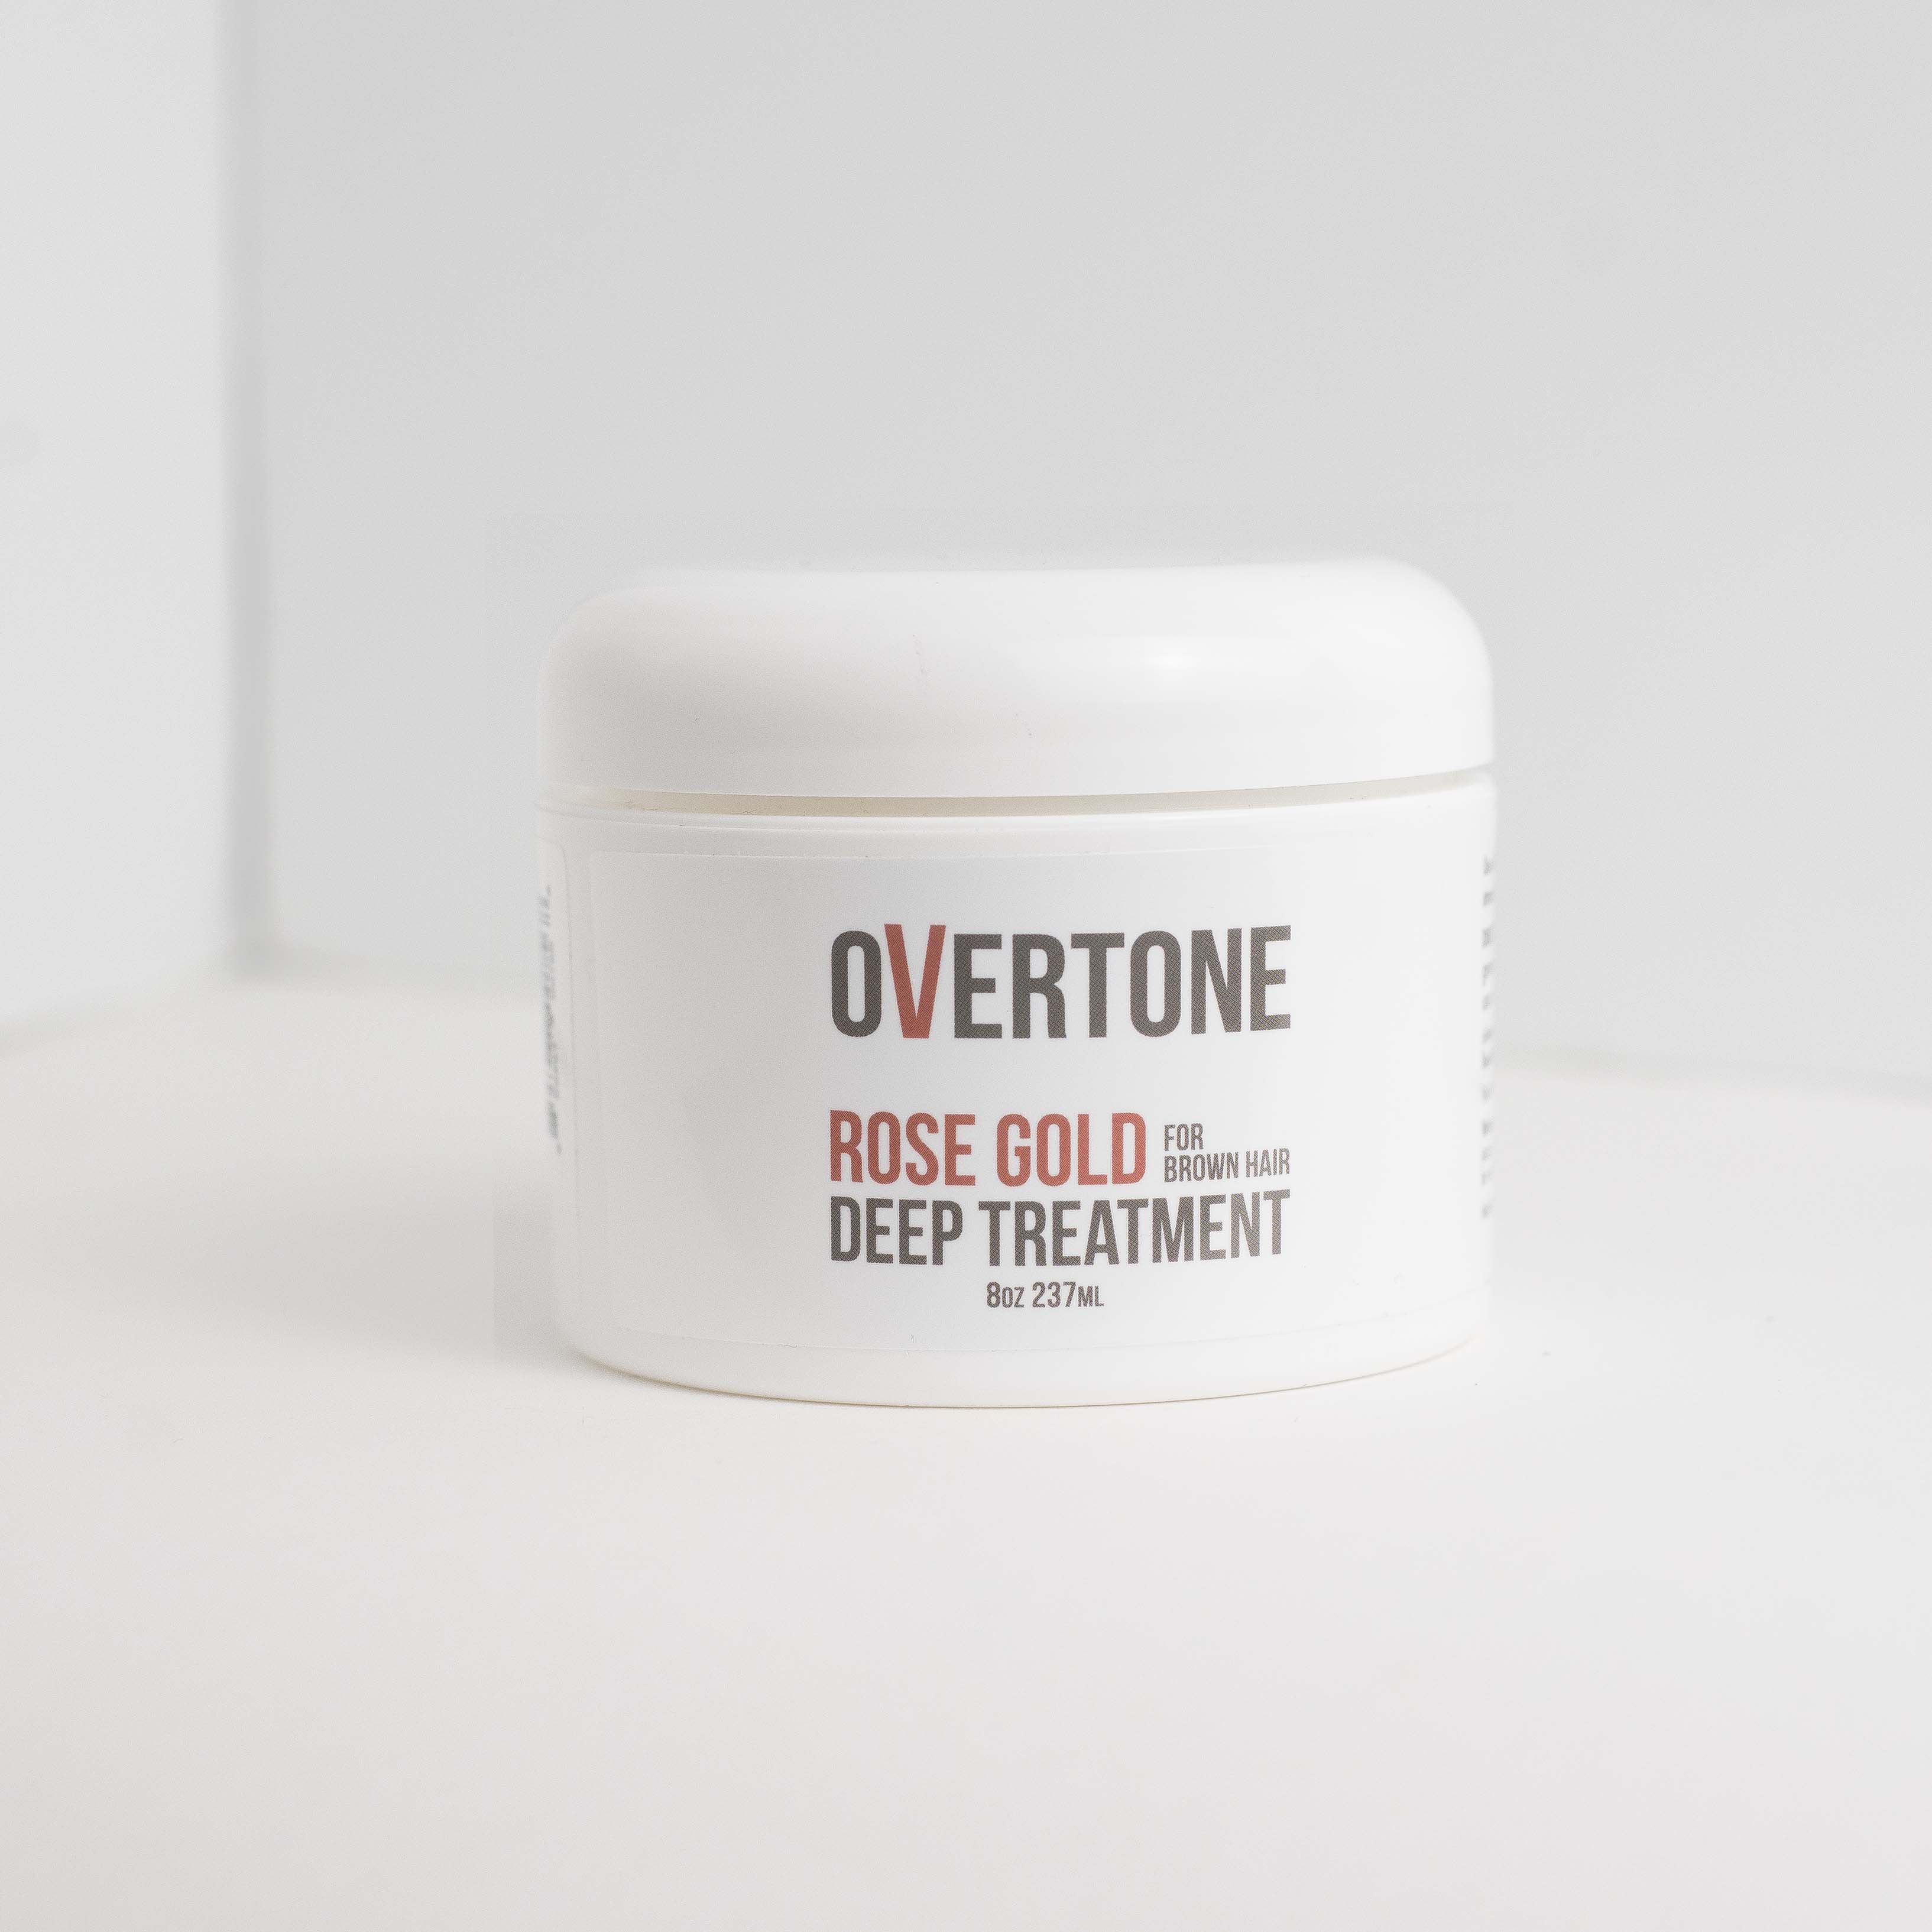 Overtone Haircare Releases Rose Gold for Brown Hair